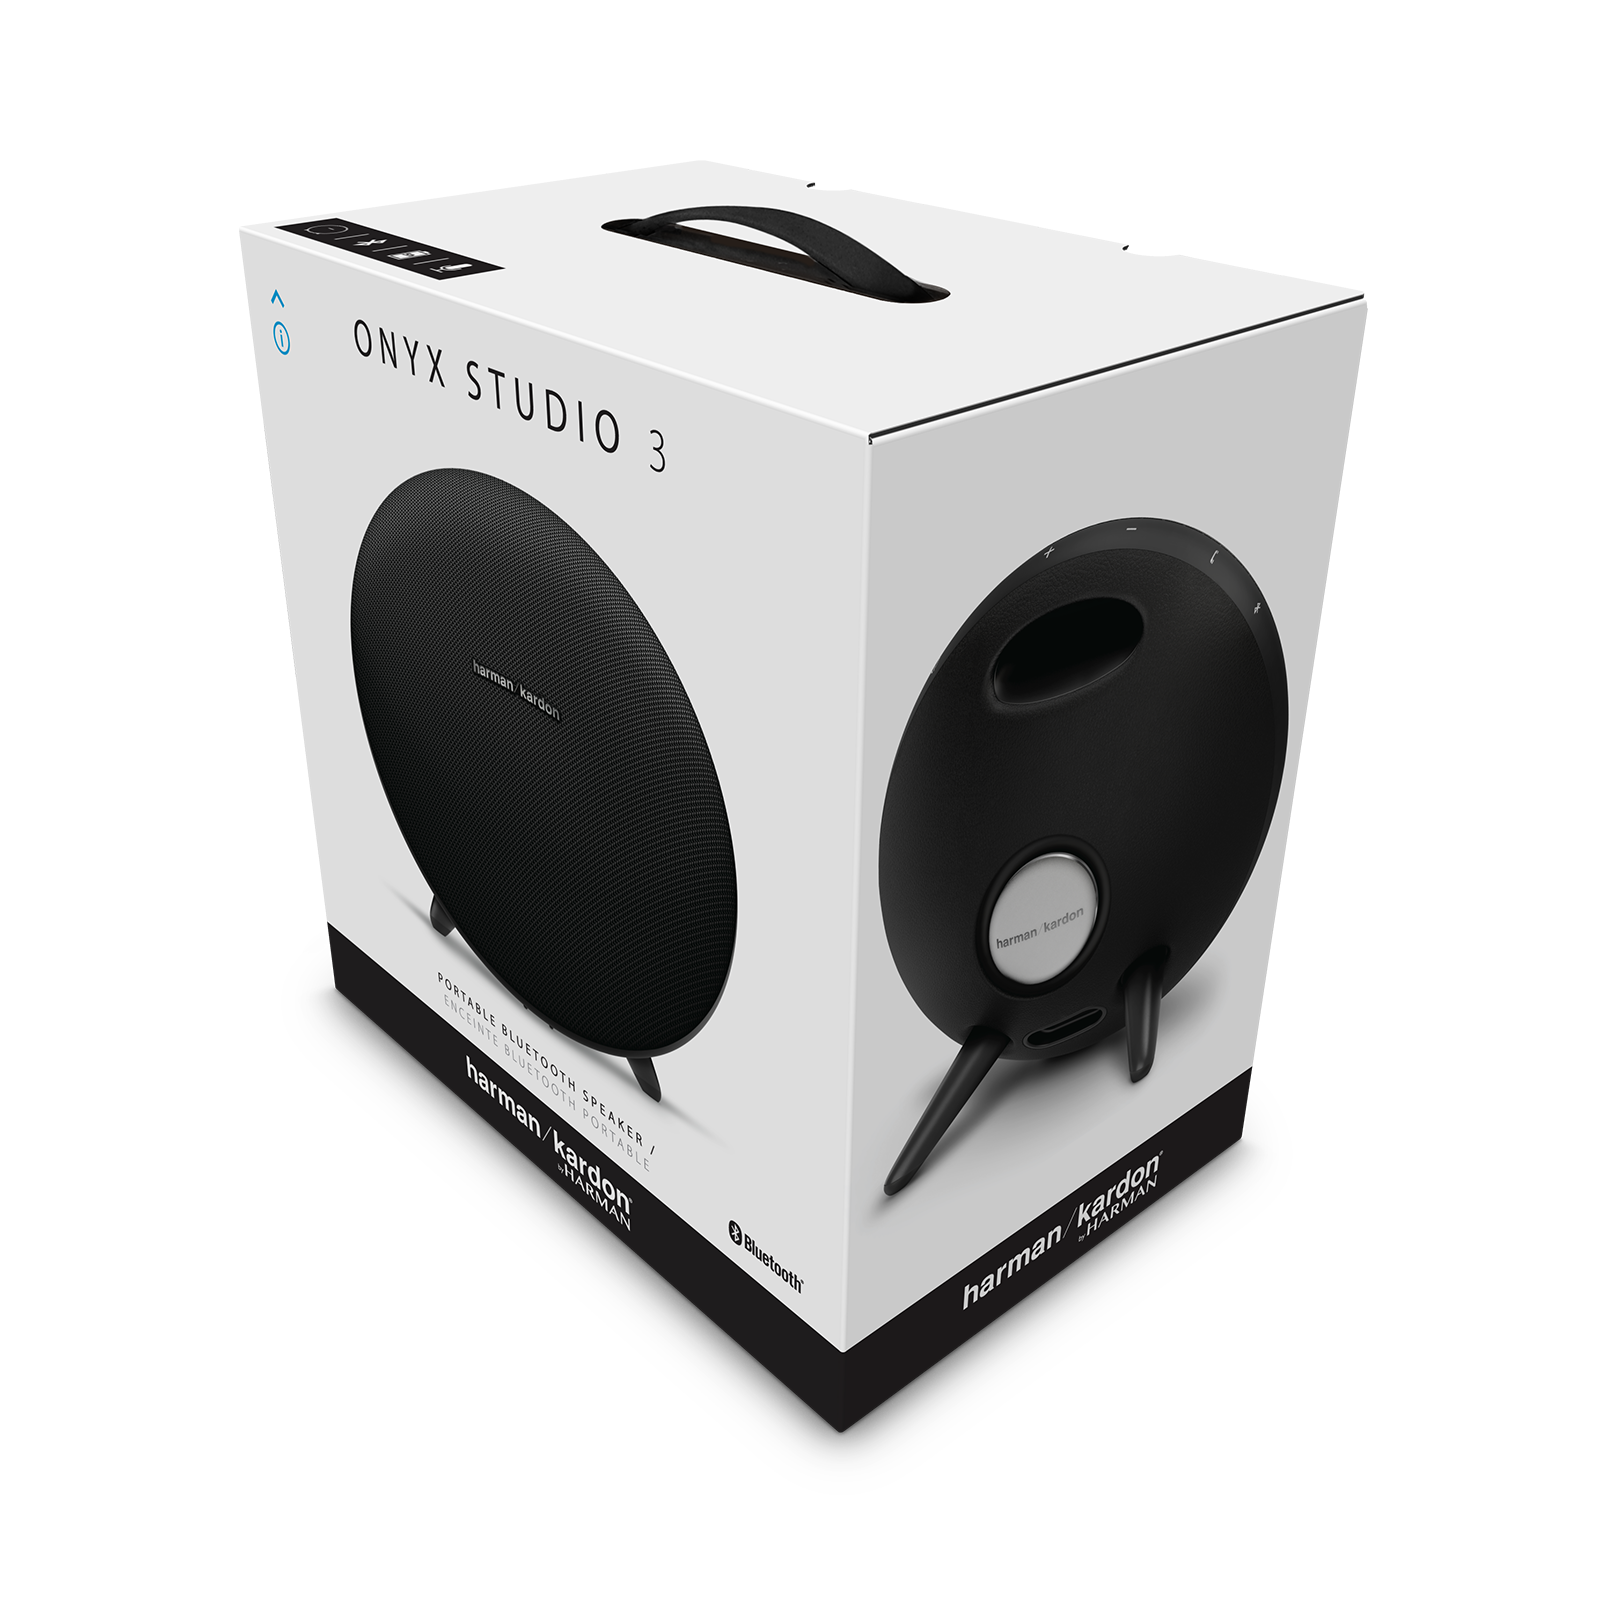 onyx-studio-3-black-box